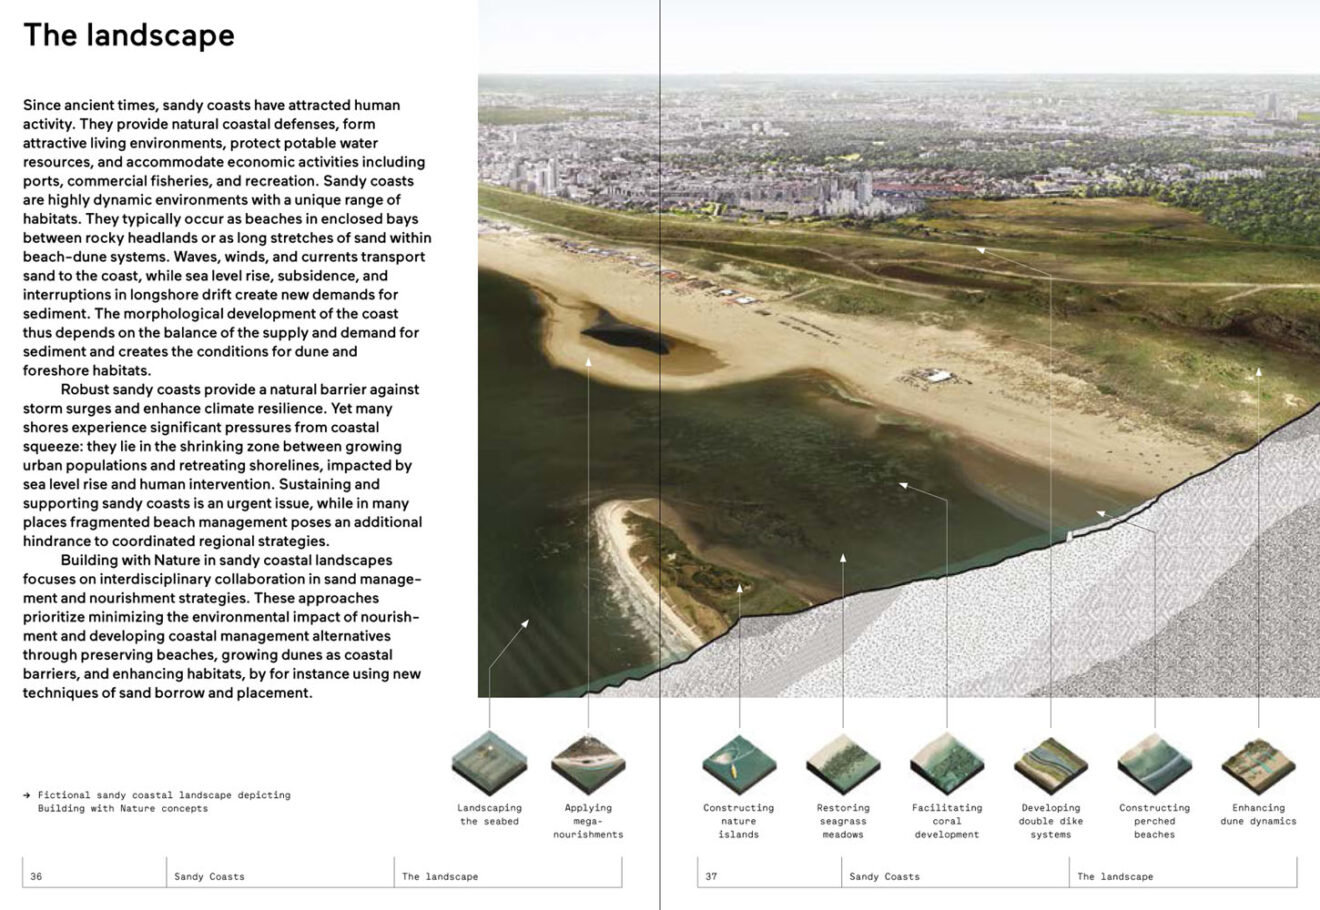 spread Building with Nature: Creating, implementing and upscaling Nature-based Solutions